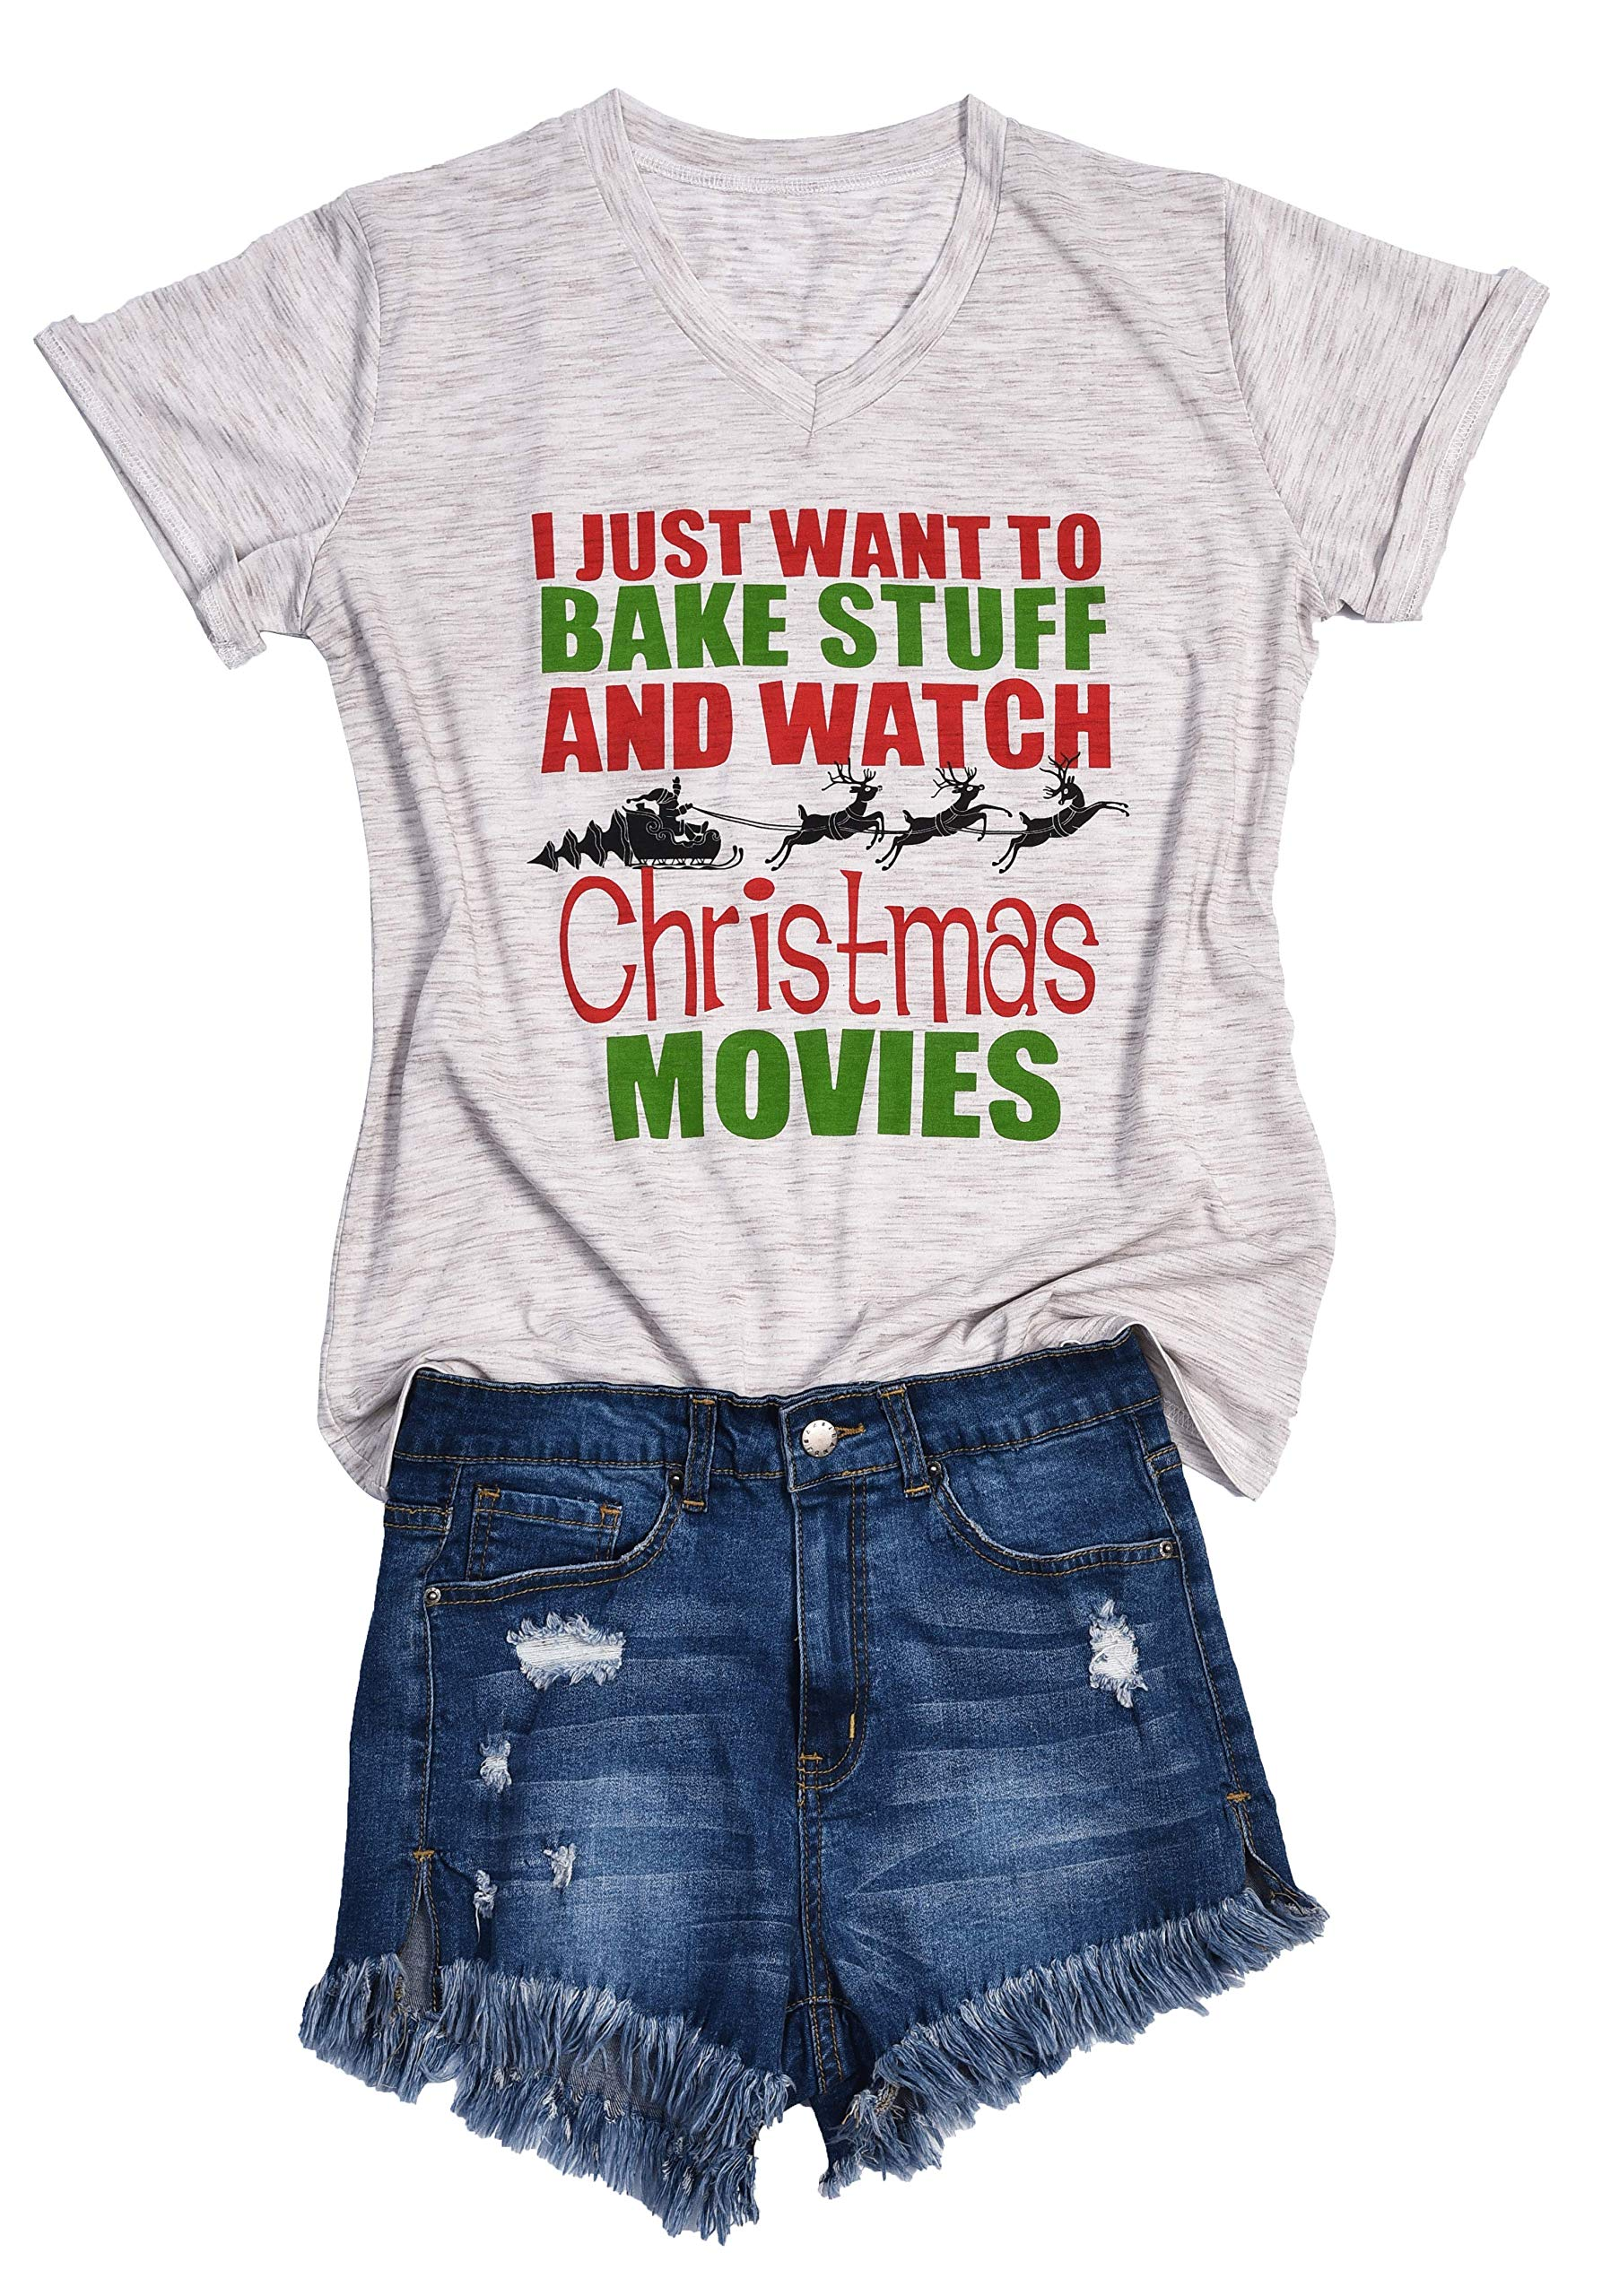 AOVXO Christmas Short Sleeve Shirts for Women Merry Christmas Shirt Hat Truck Reindeer Christmas Movie T-Shirt Meaningful Gift (Gray 4, XL)